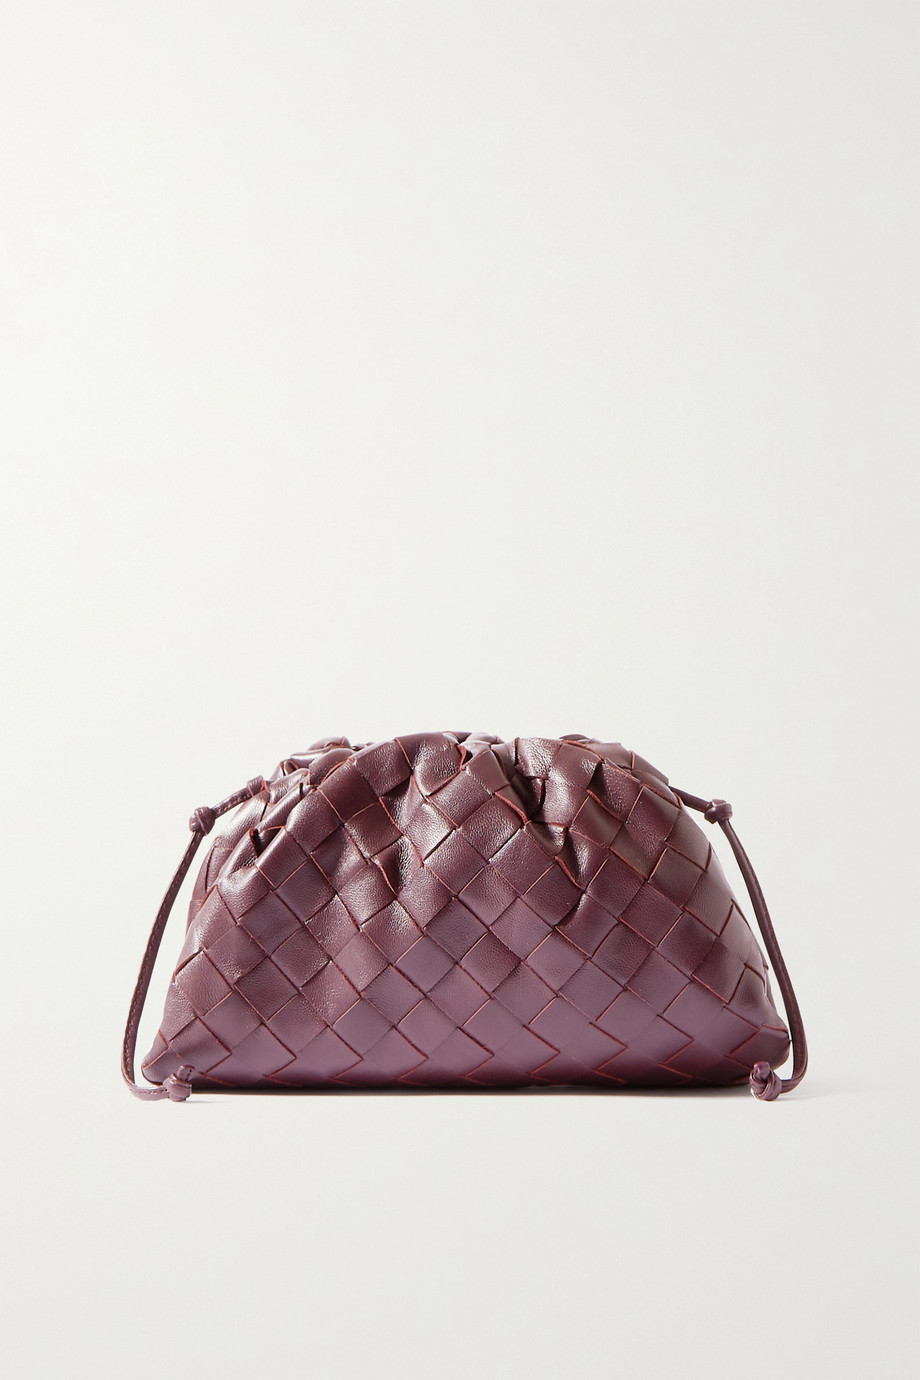 Bottega Veneta The Pouch small intrecciato leather clutch